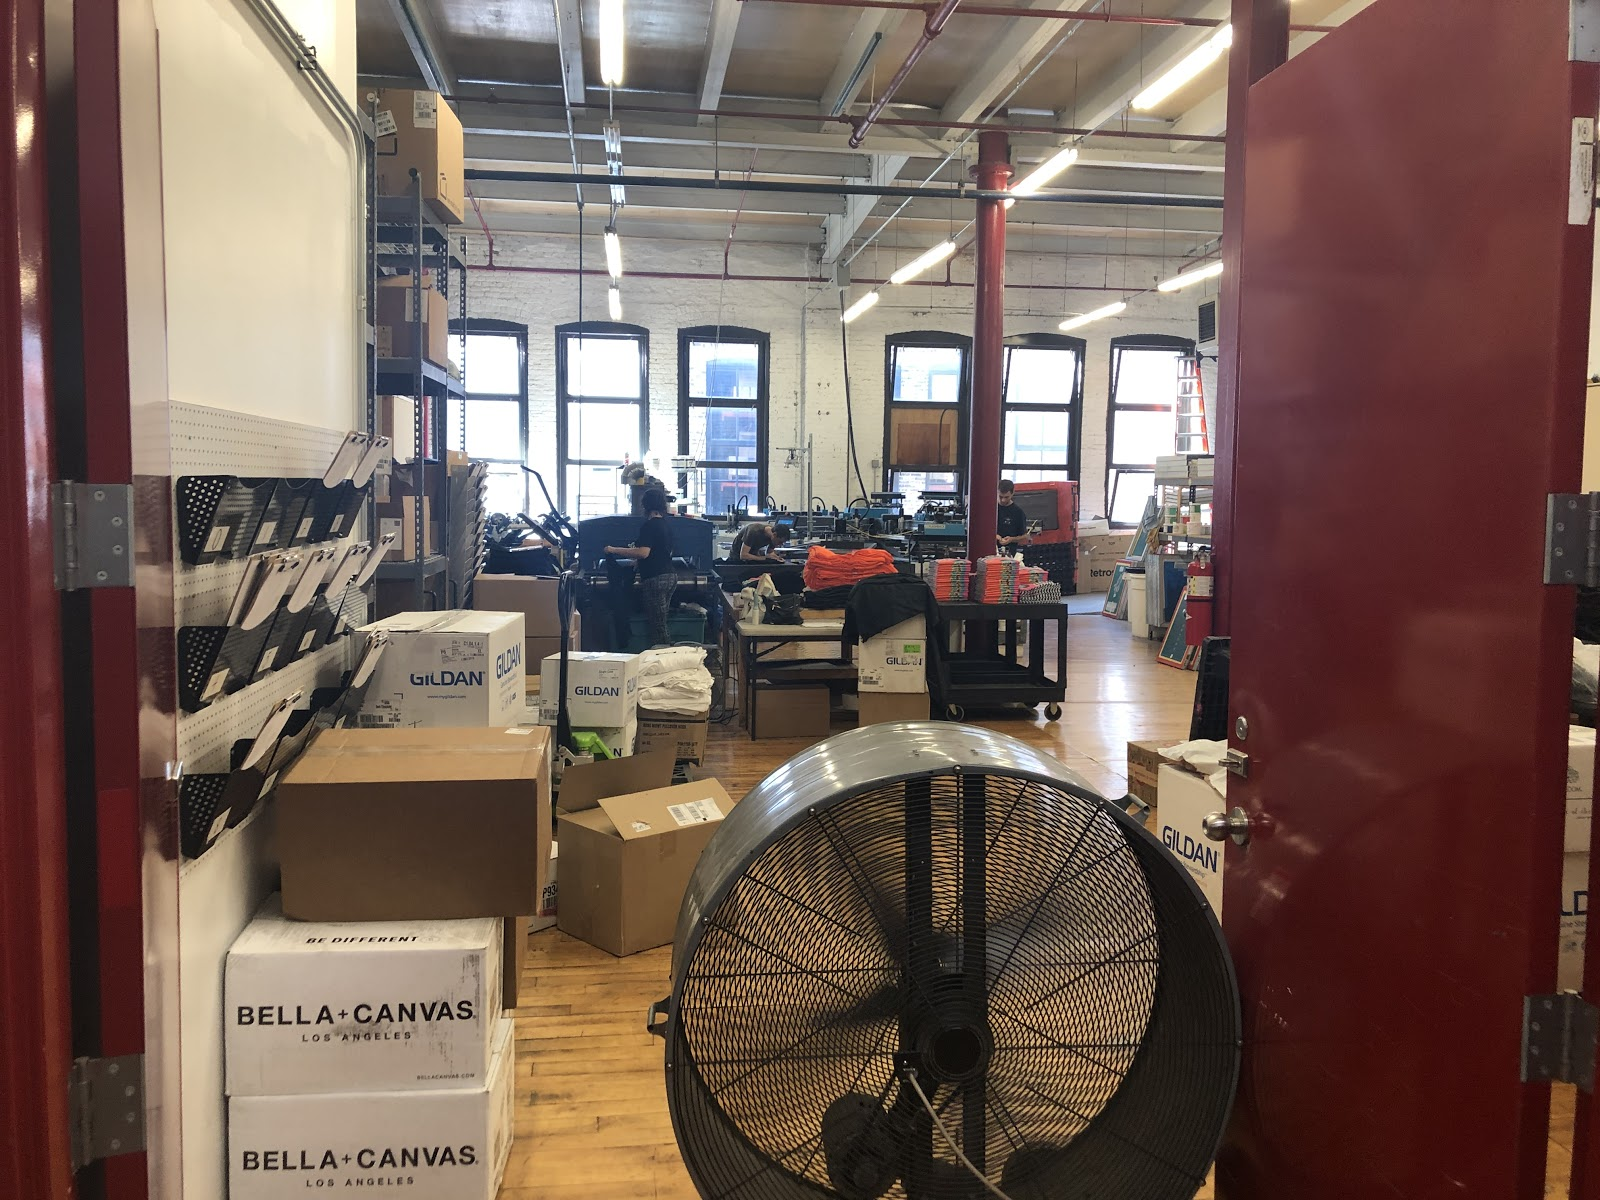 A silk screening company in the incubator services many of the other tenants branded apparel needs. This company will likely be replaced by another apparel company when it outgrows this space